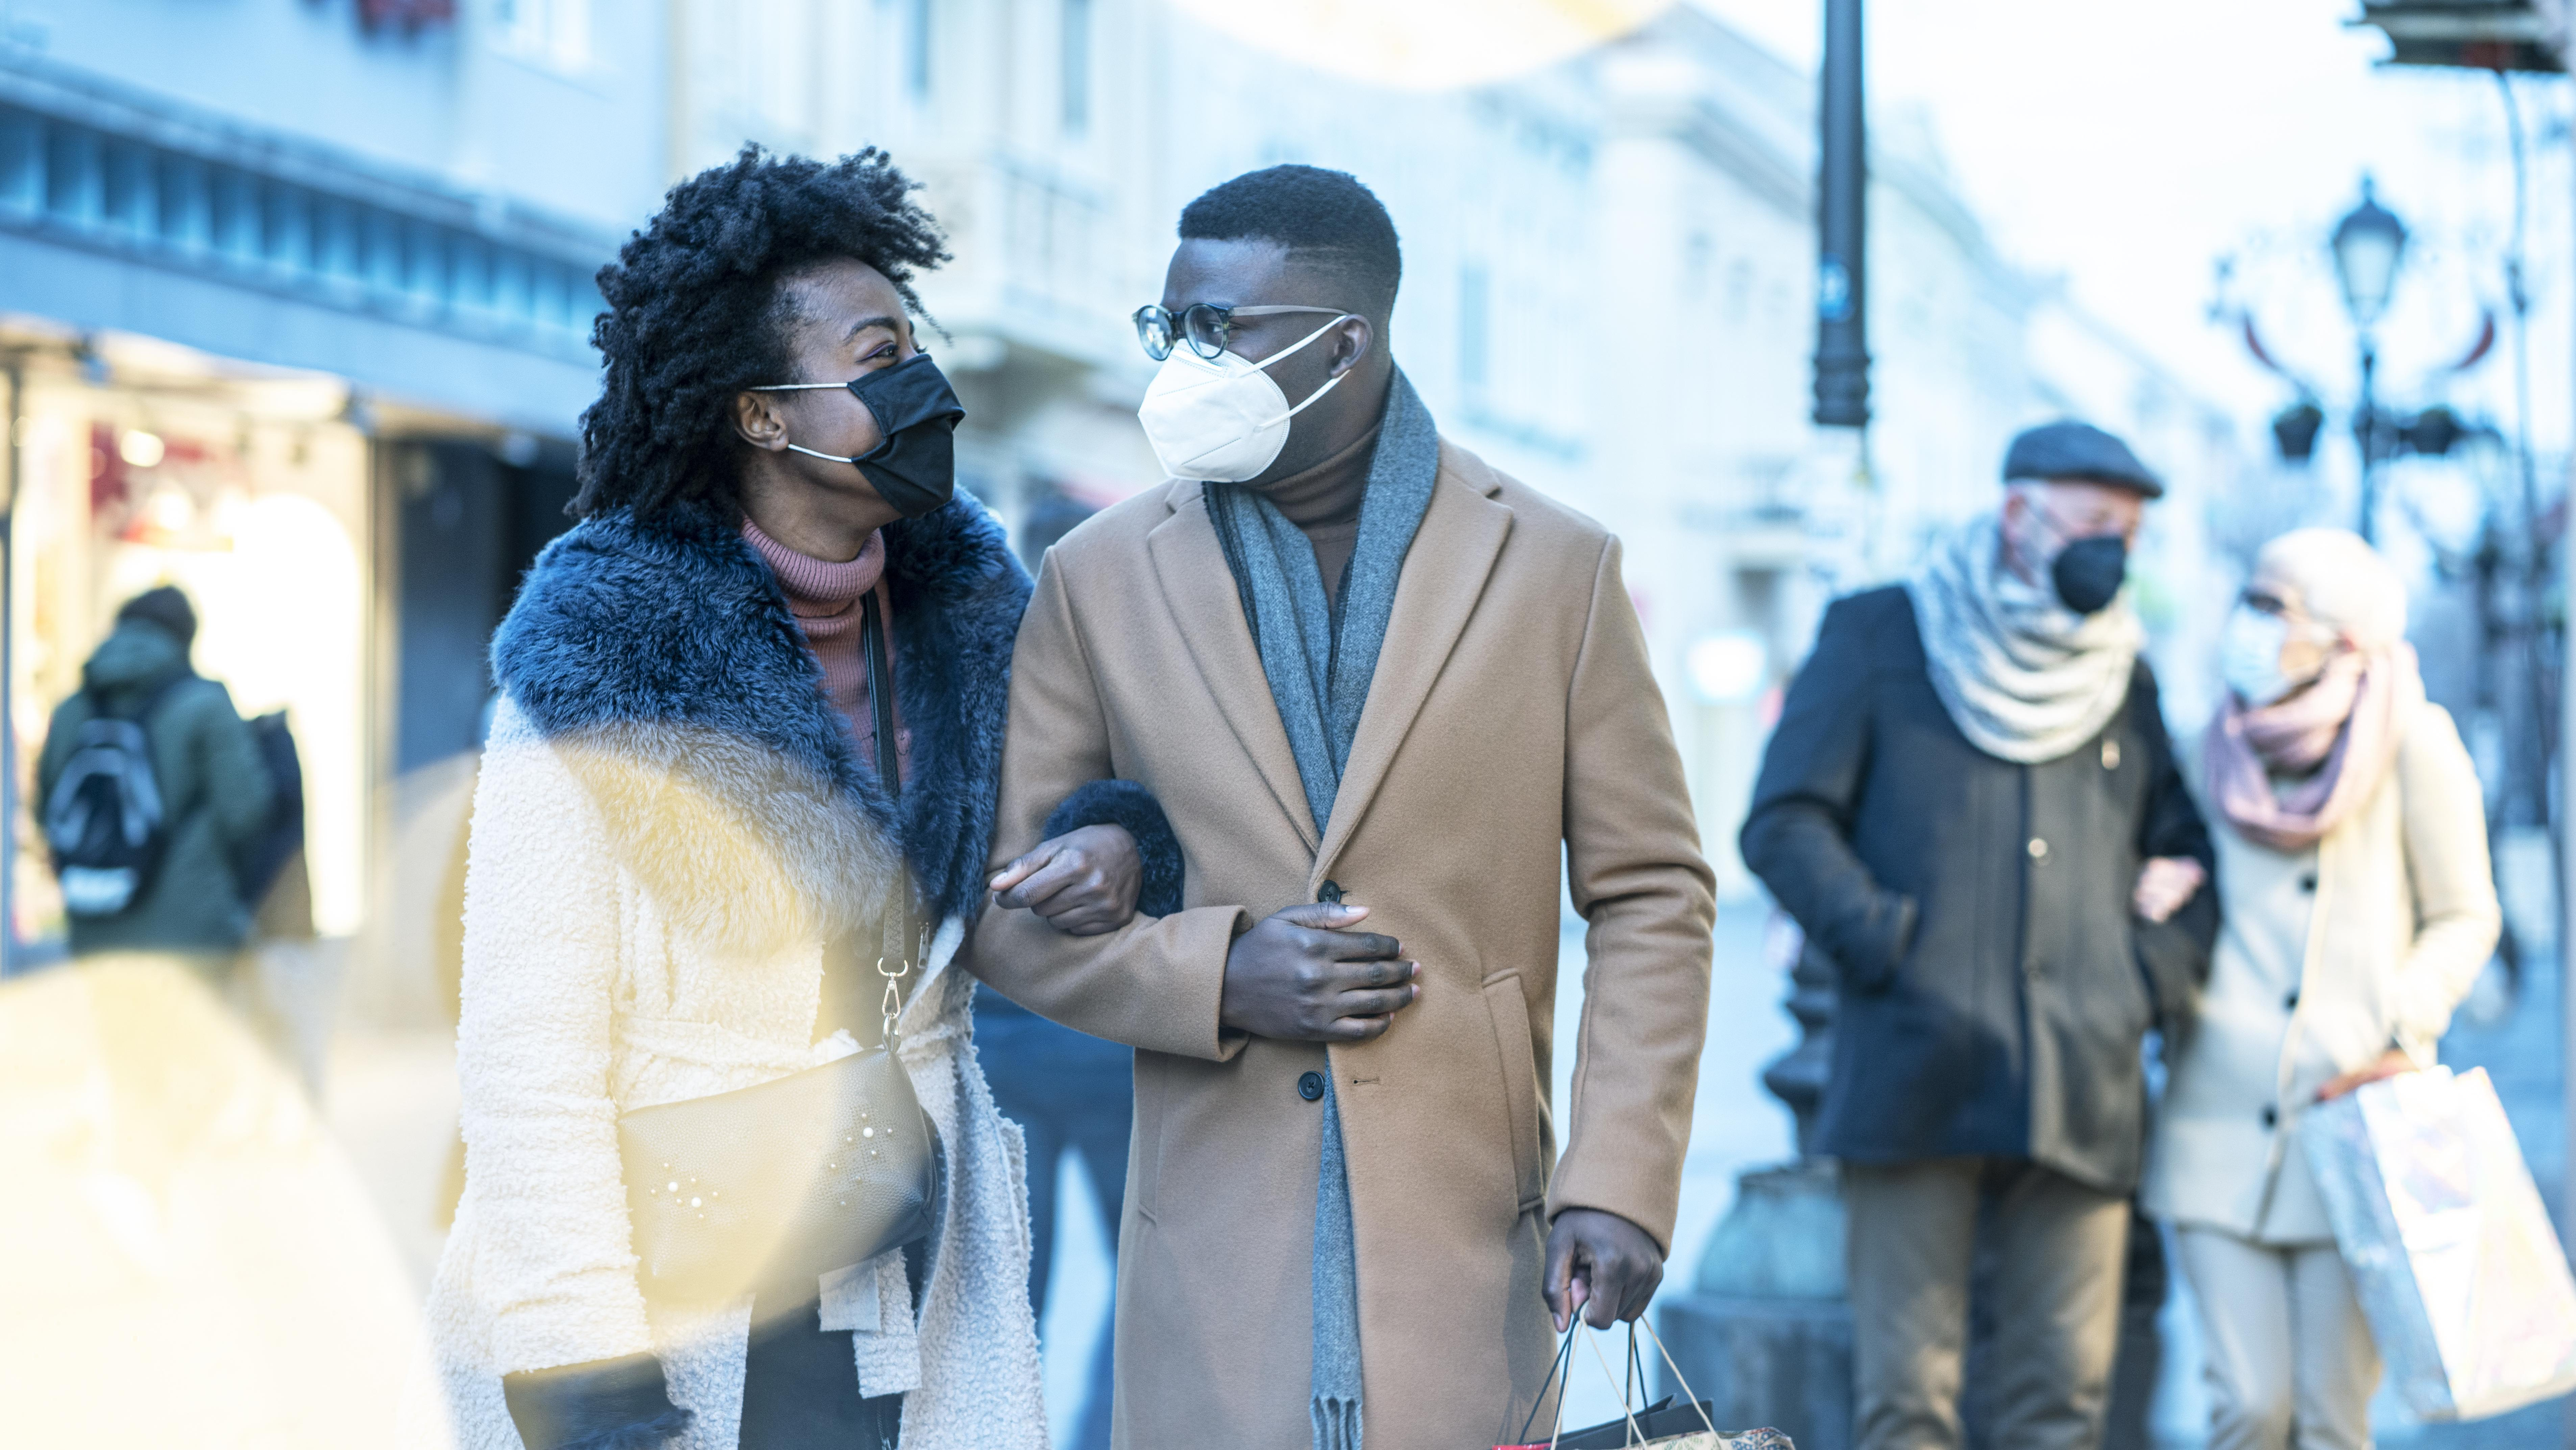 Young couple at Christmas shopping, COVID-19 pandemic. They wearing a protective mask to protect from corona virus COVID-19